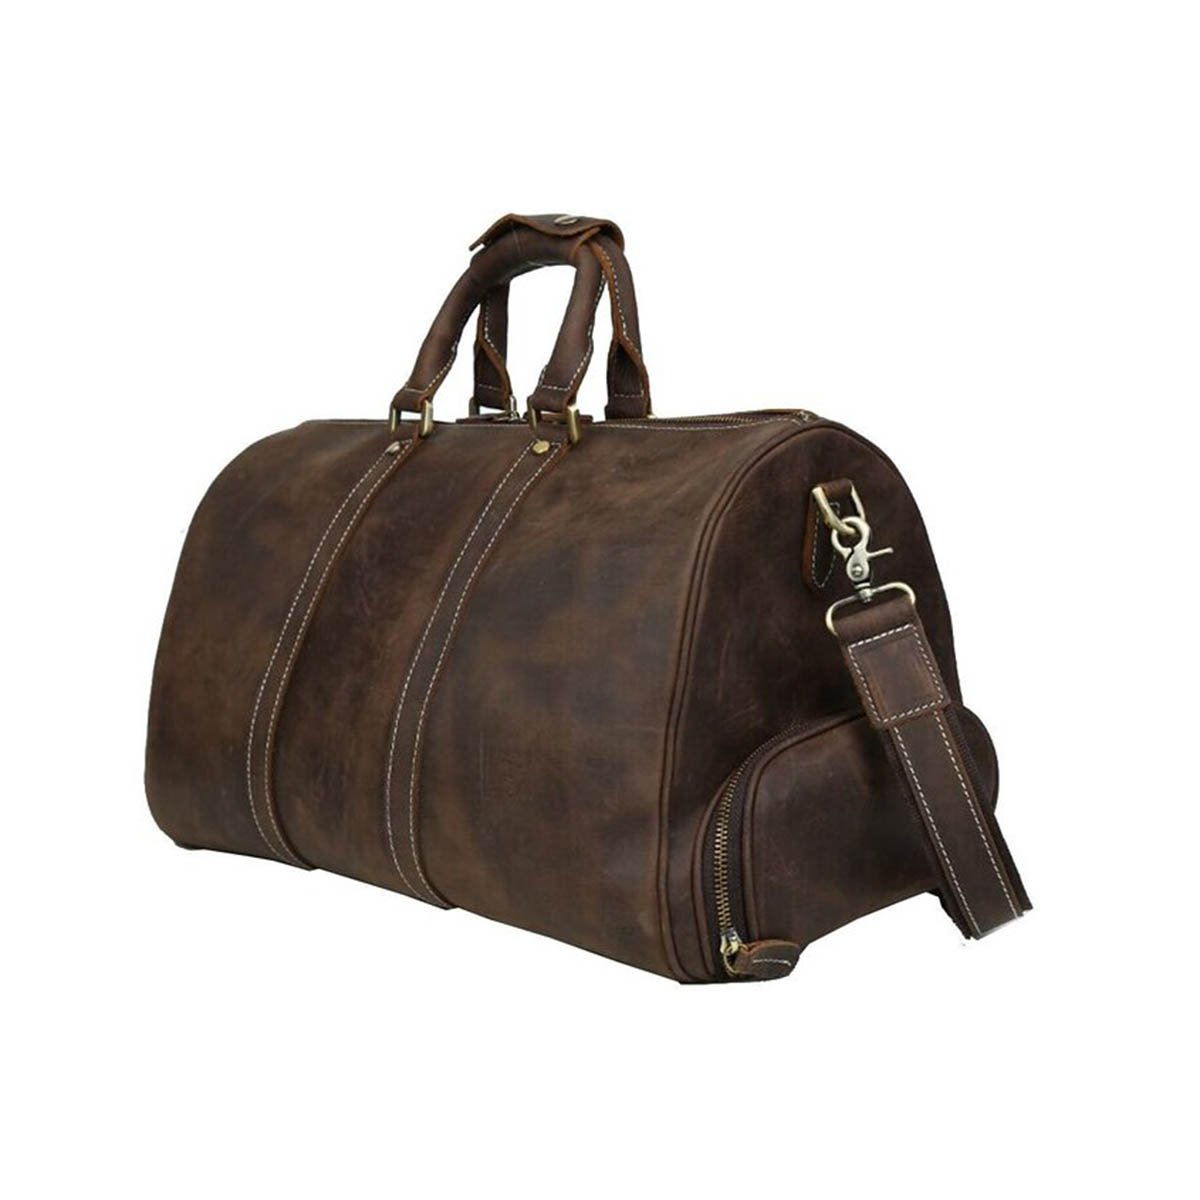 low-cost Mens Leather Travel Duffel Bag with Shoes Compartment Weekend  Carry On Shoulder Bag d614faea35b8c